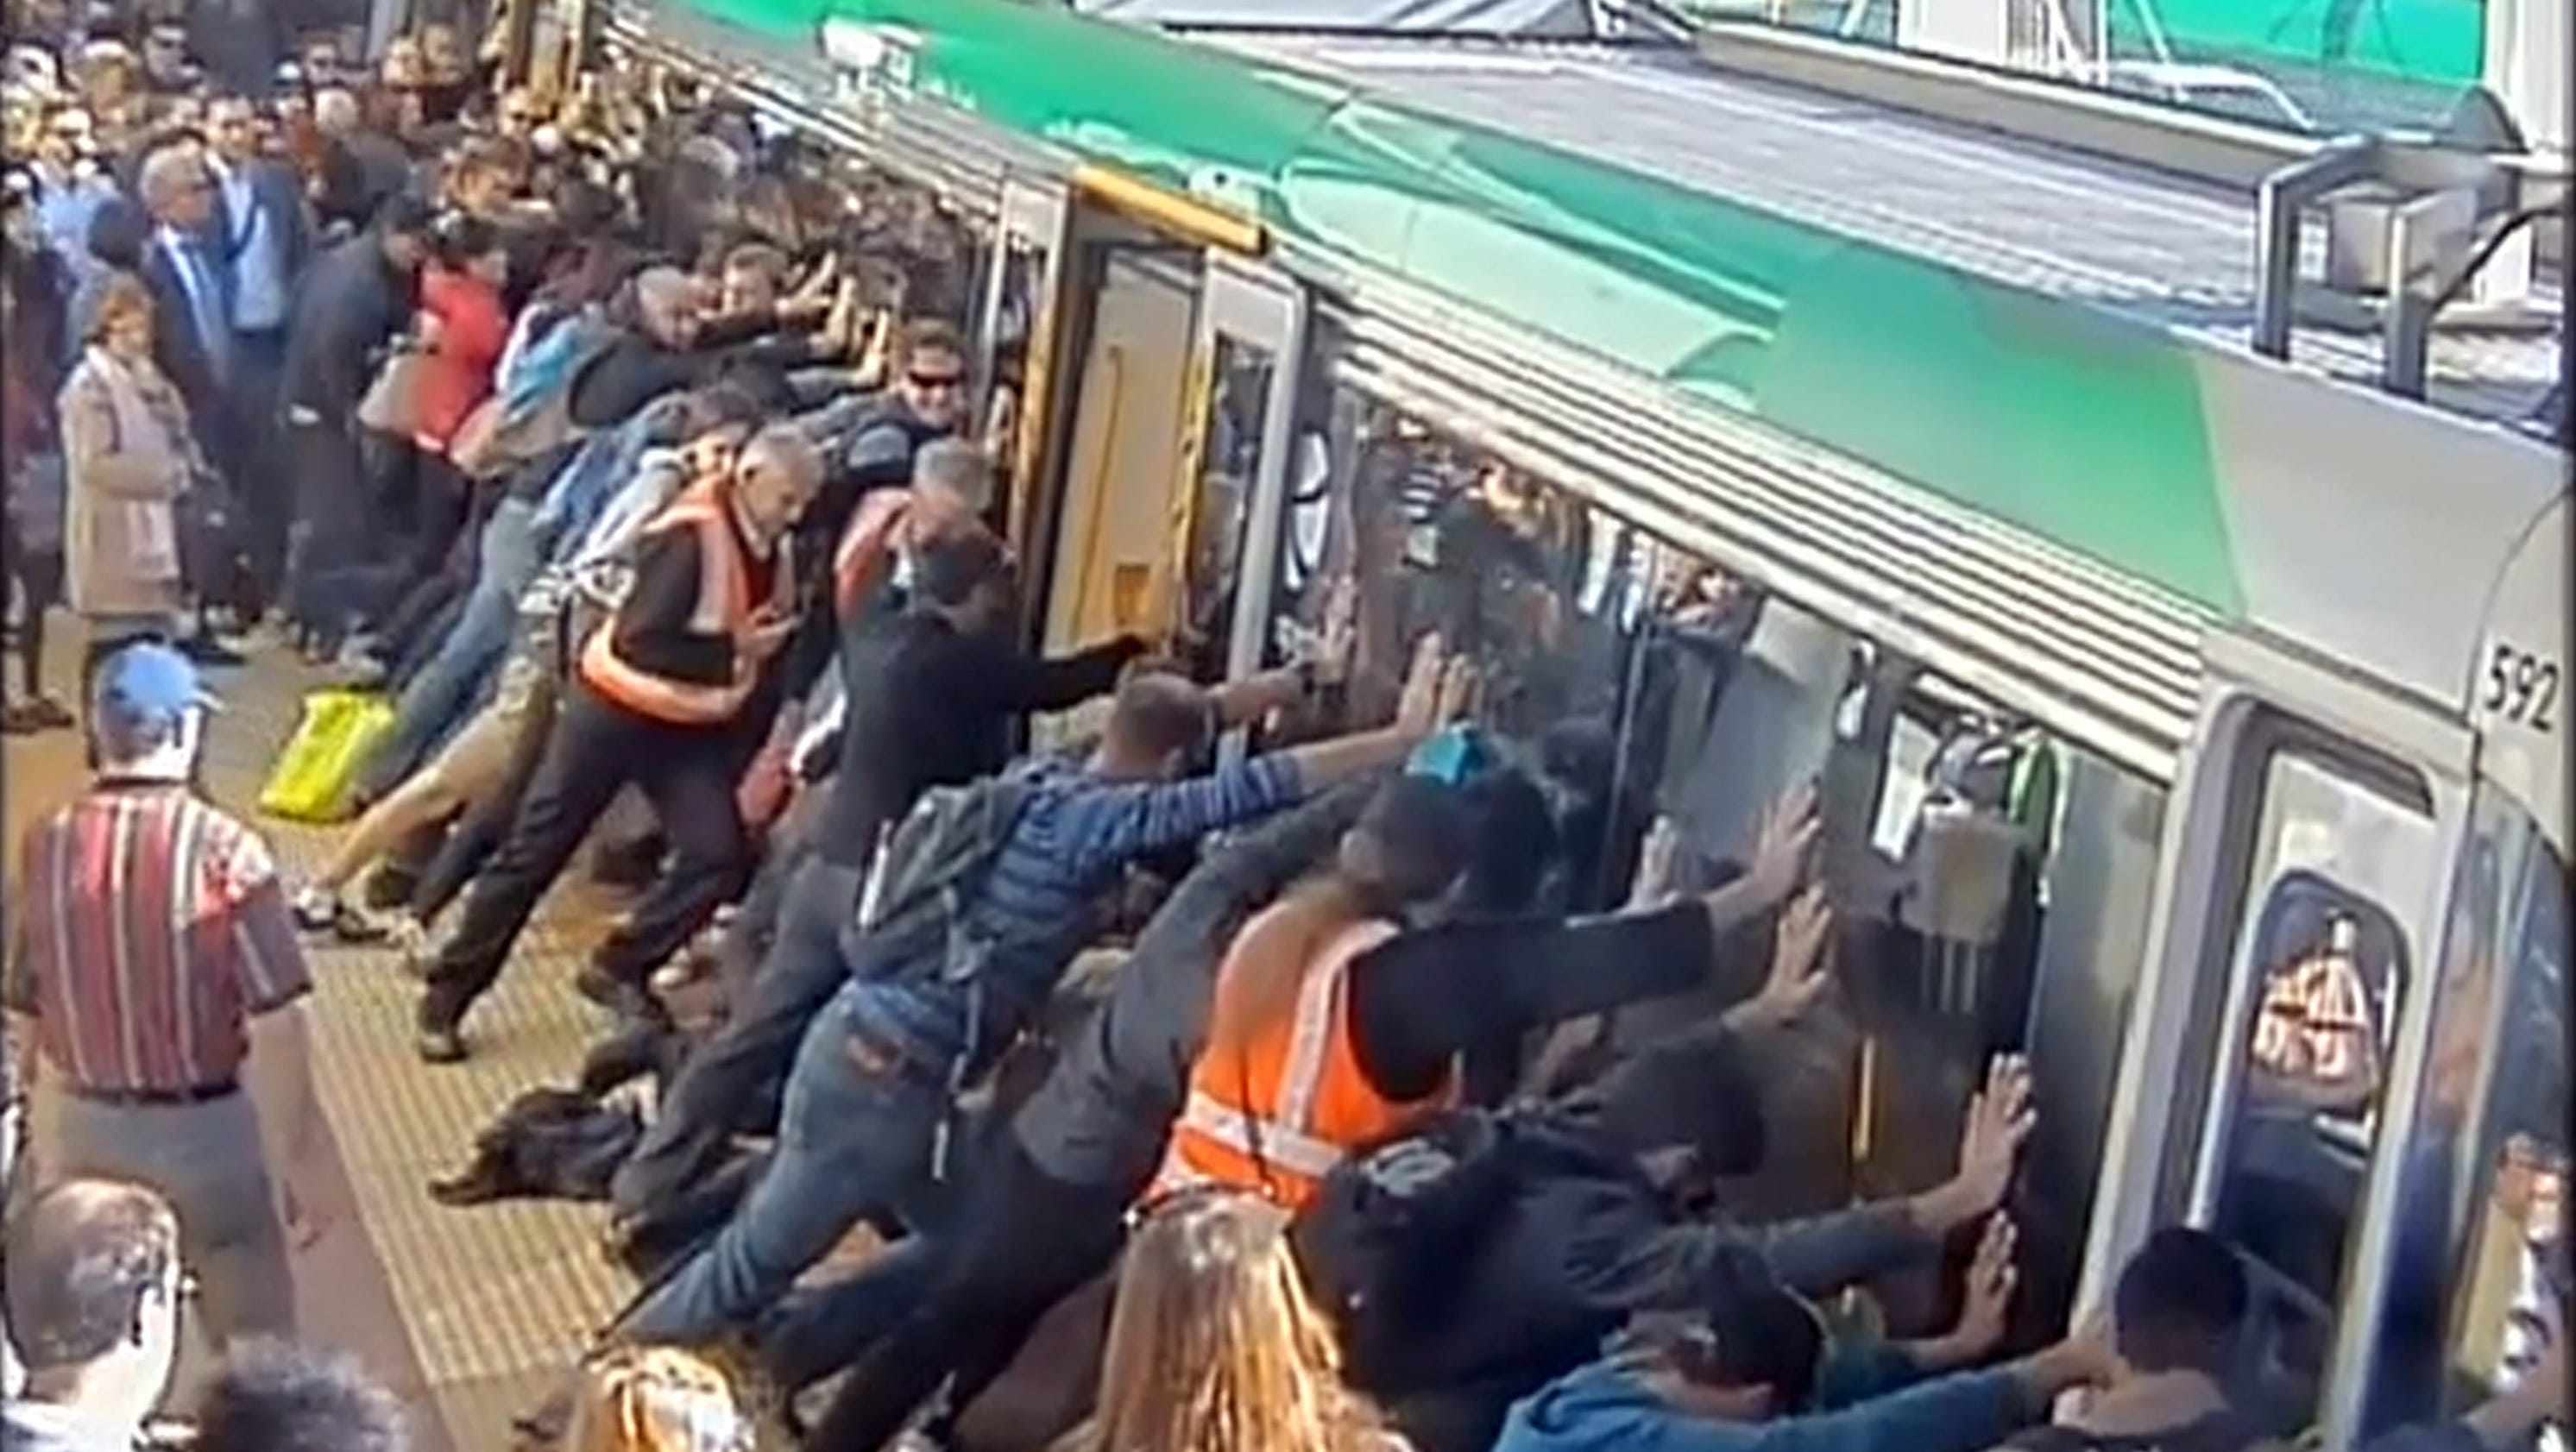 Commuters Tip Train Cars To Help Trapped Man